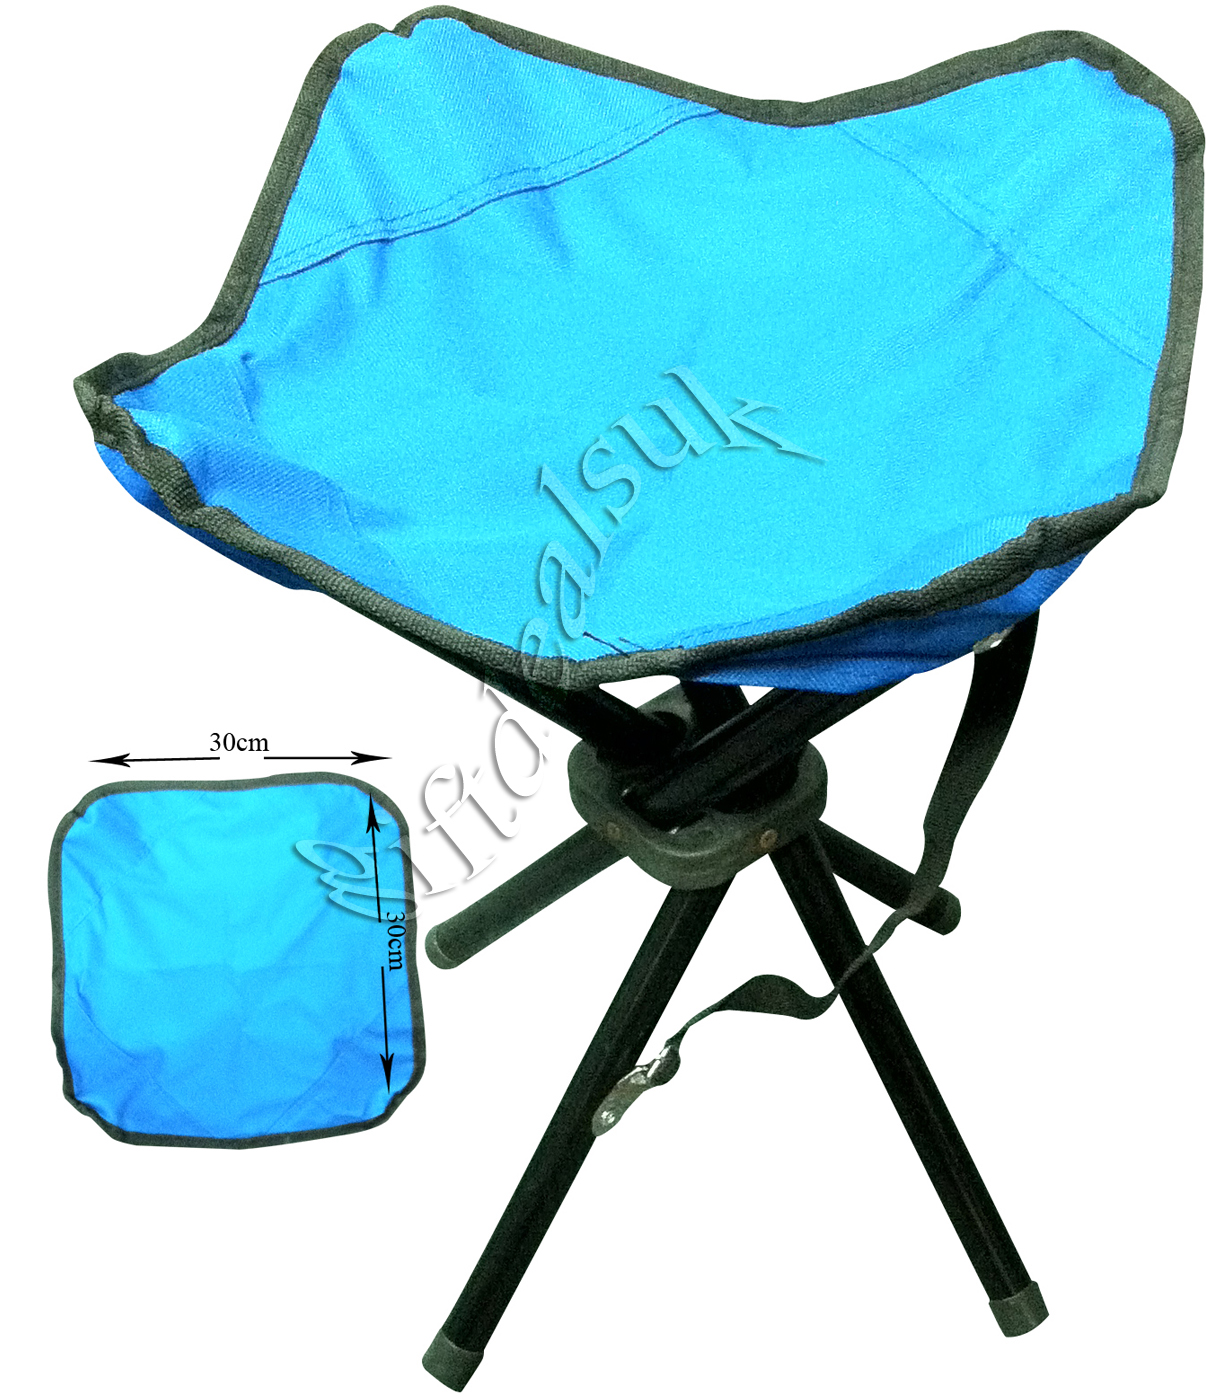 Folding Portable 4 Legs Strong Camping Stool Chair Seat